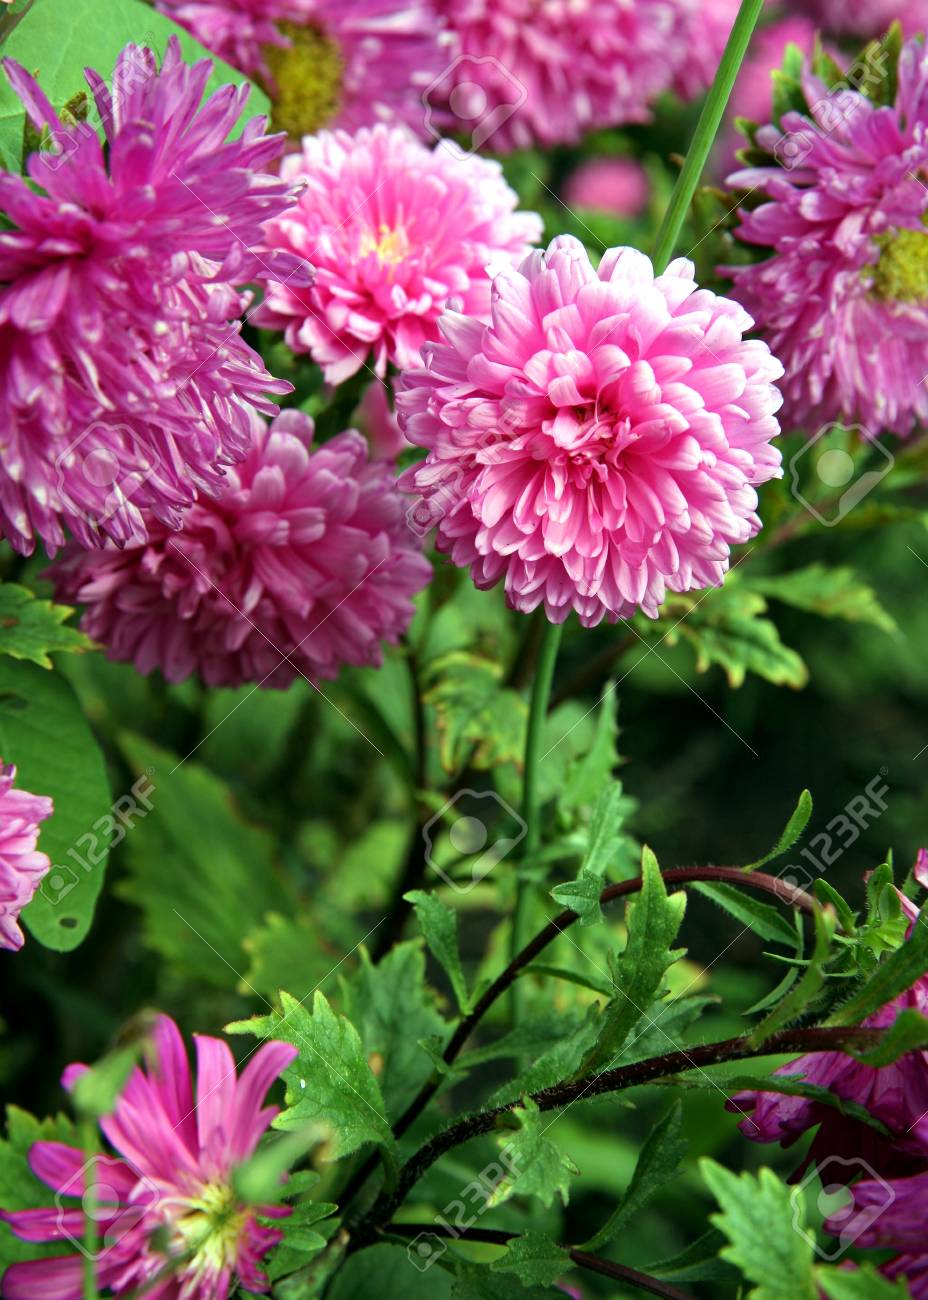 Autumn Flowers Pink Astra On Green Backgrownd Stock Photo Picture